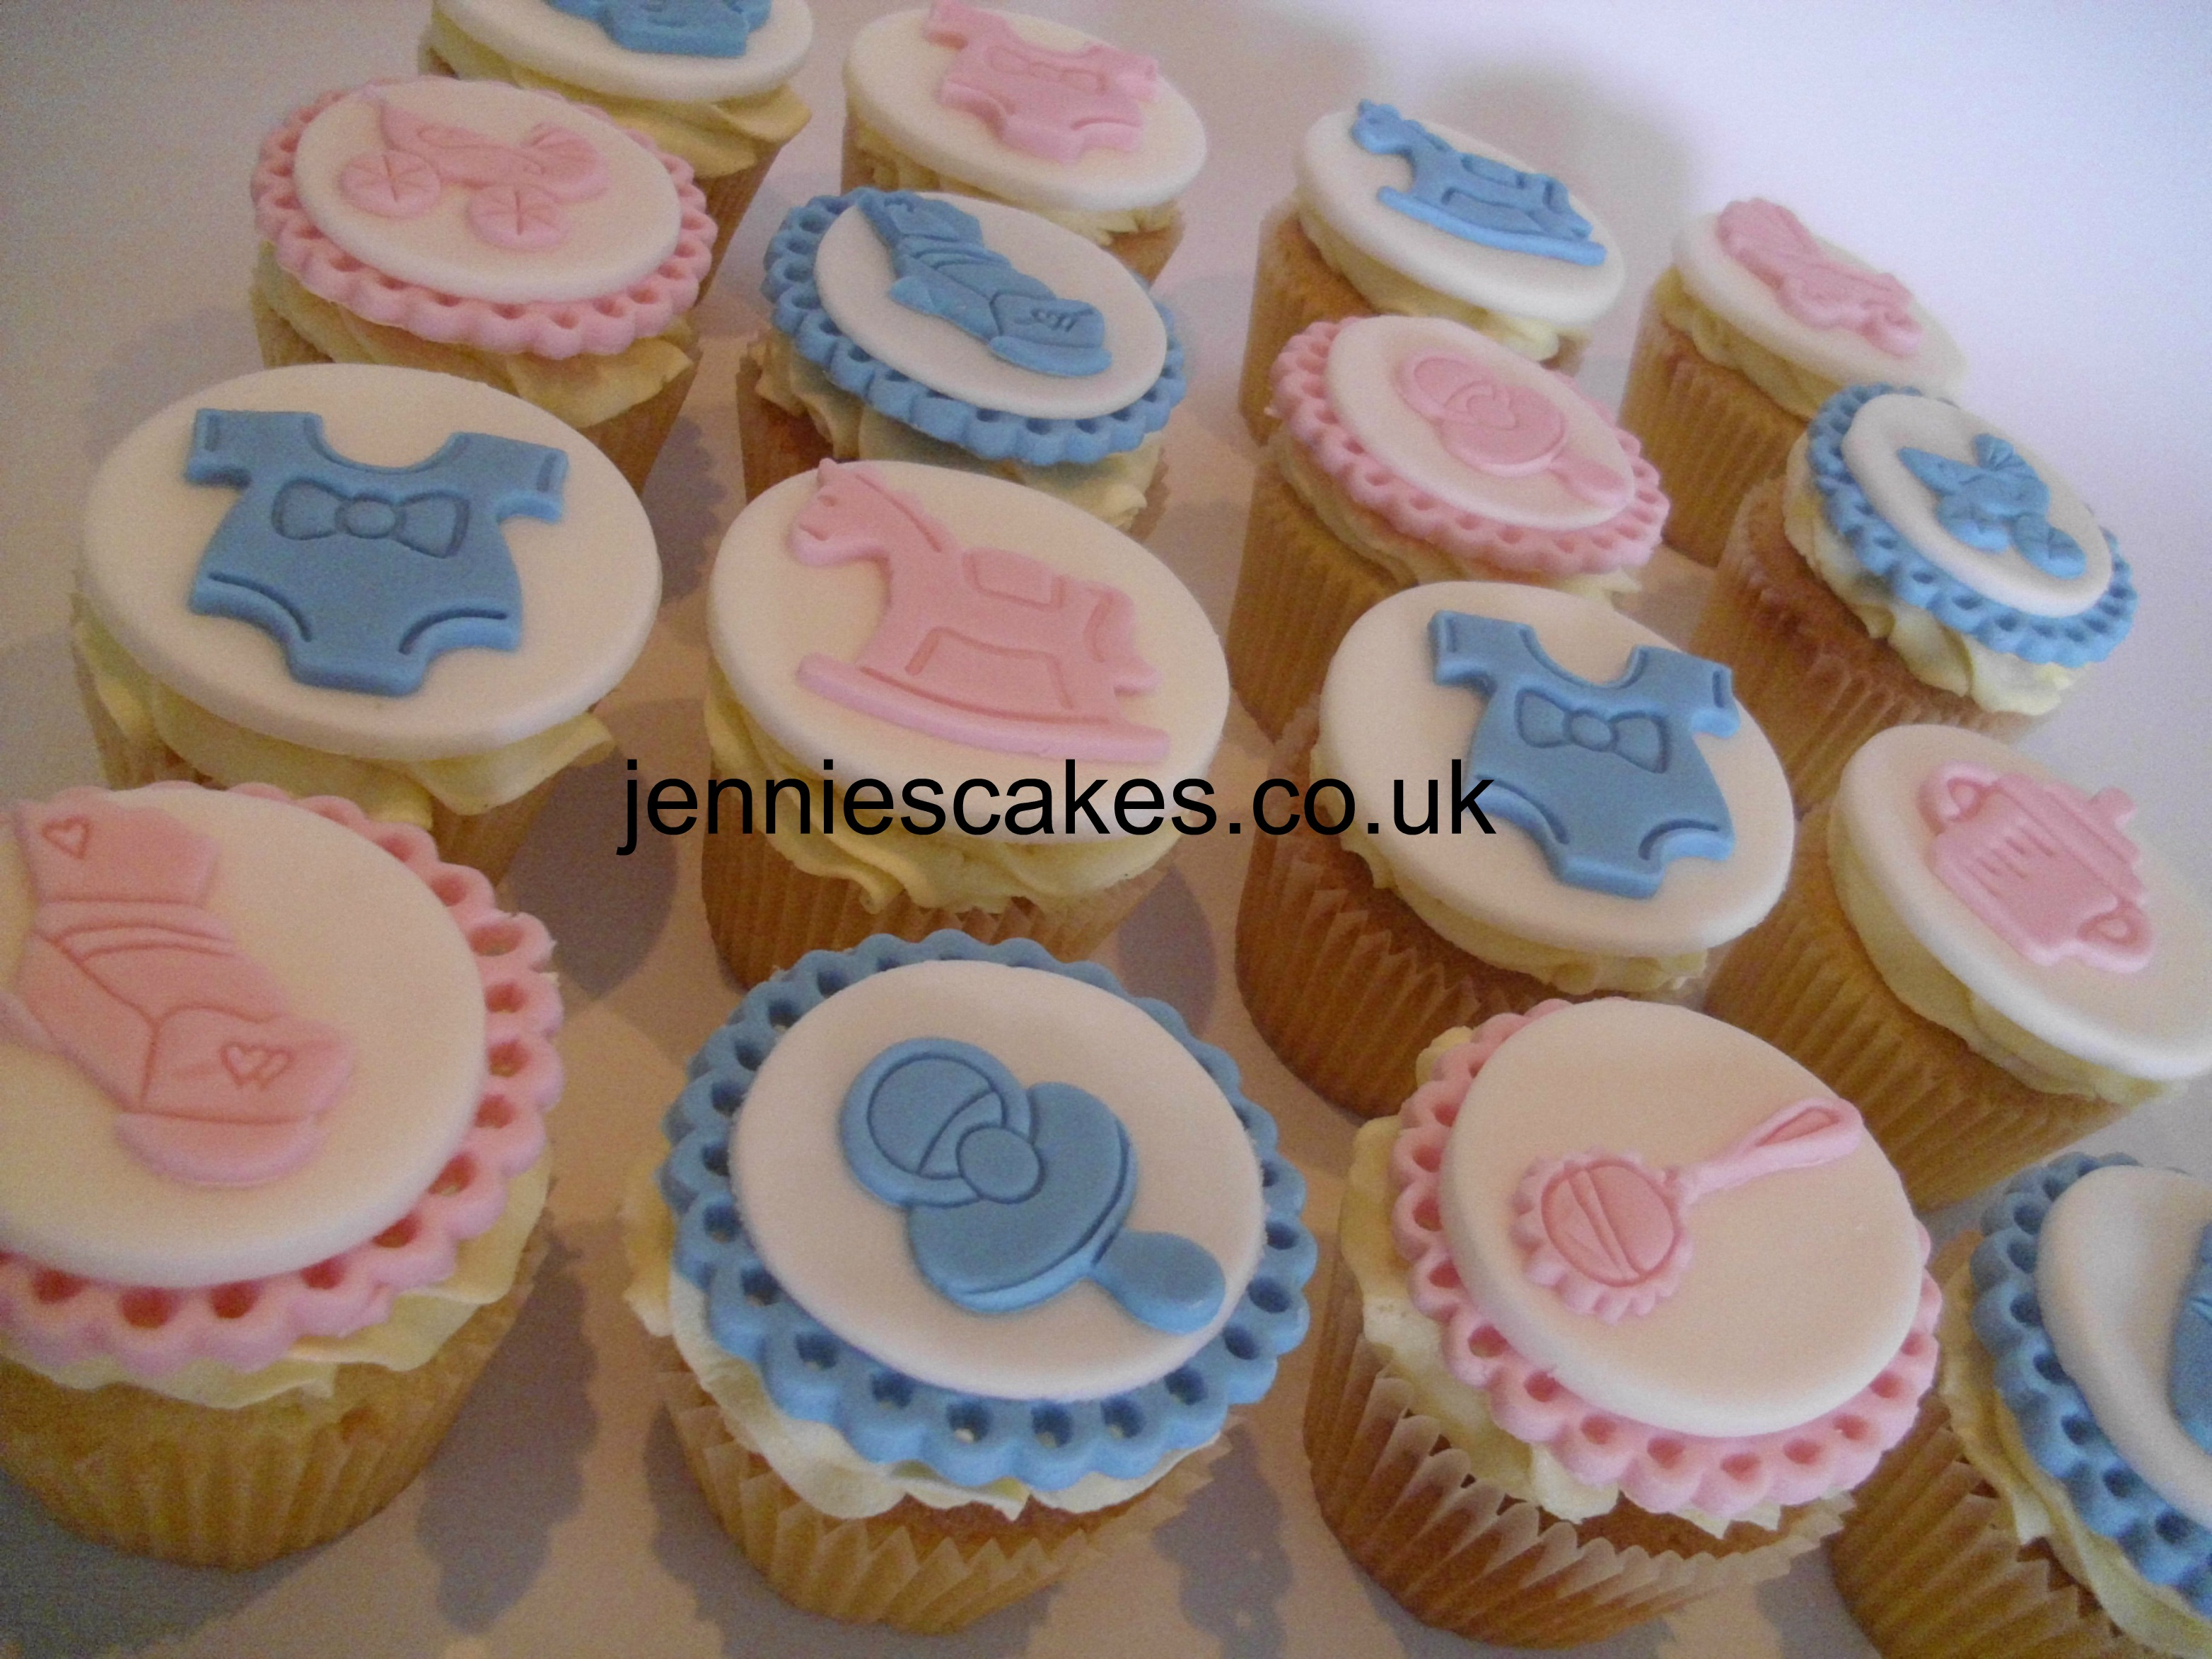 cupcakes come in so many flavours and designs you can have them for